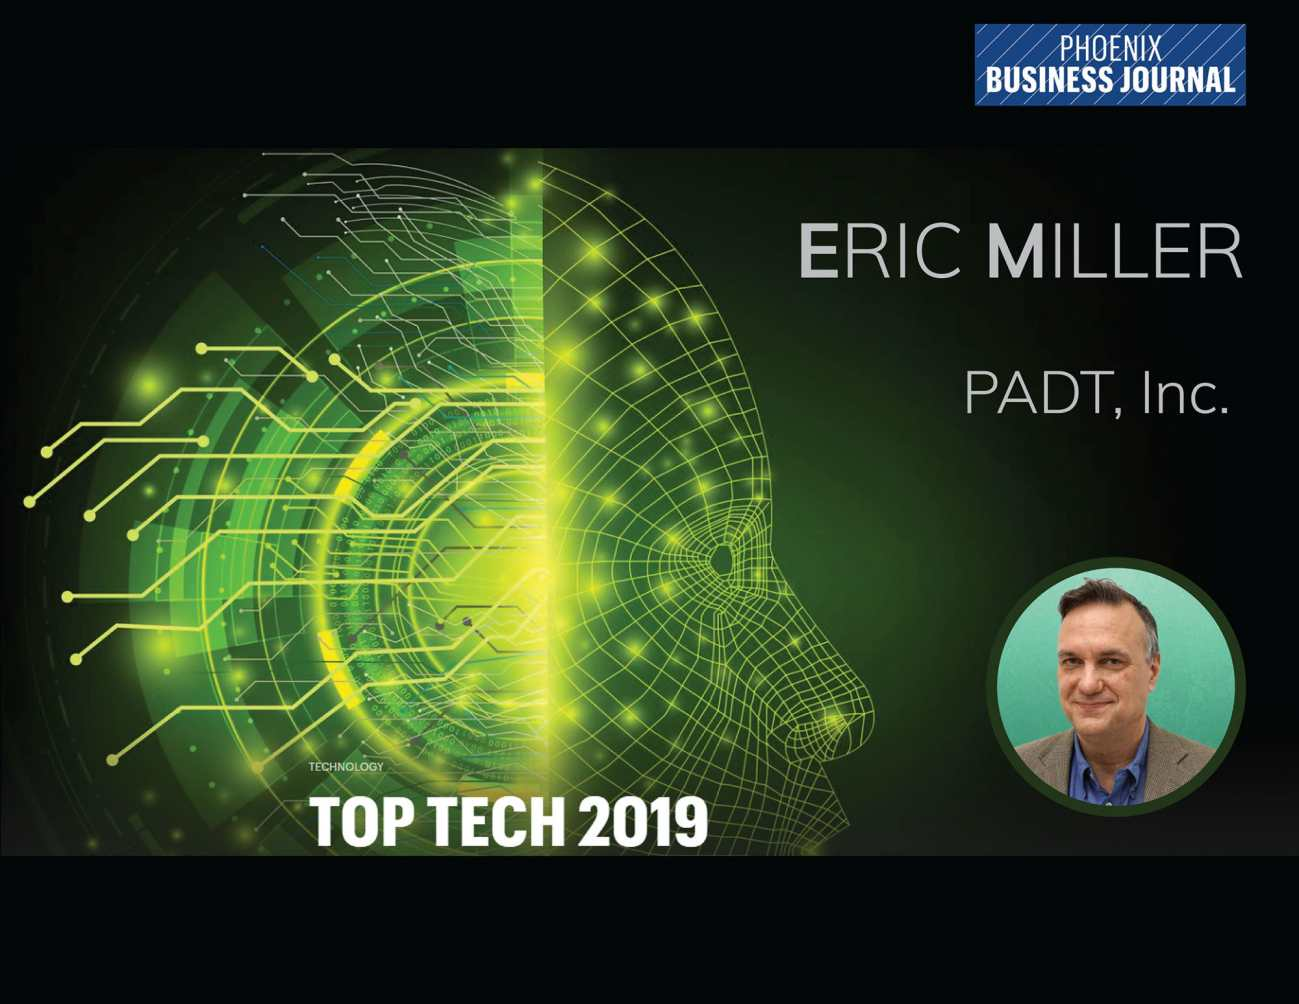 2019 Arizona Top Tech Exec Award, Eric Miller, PADT